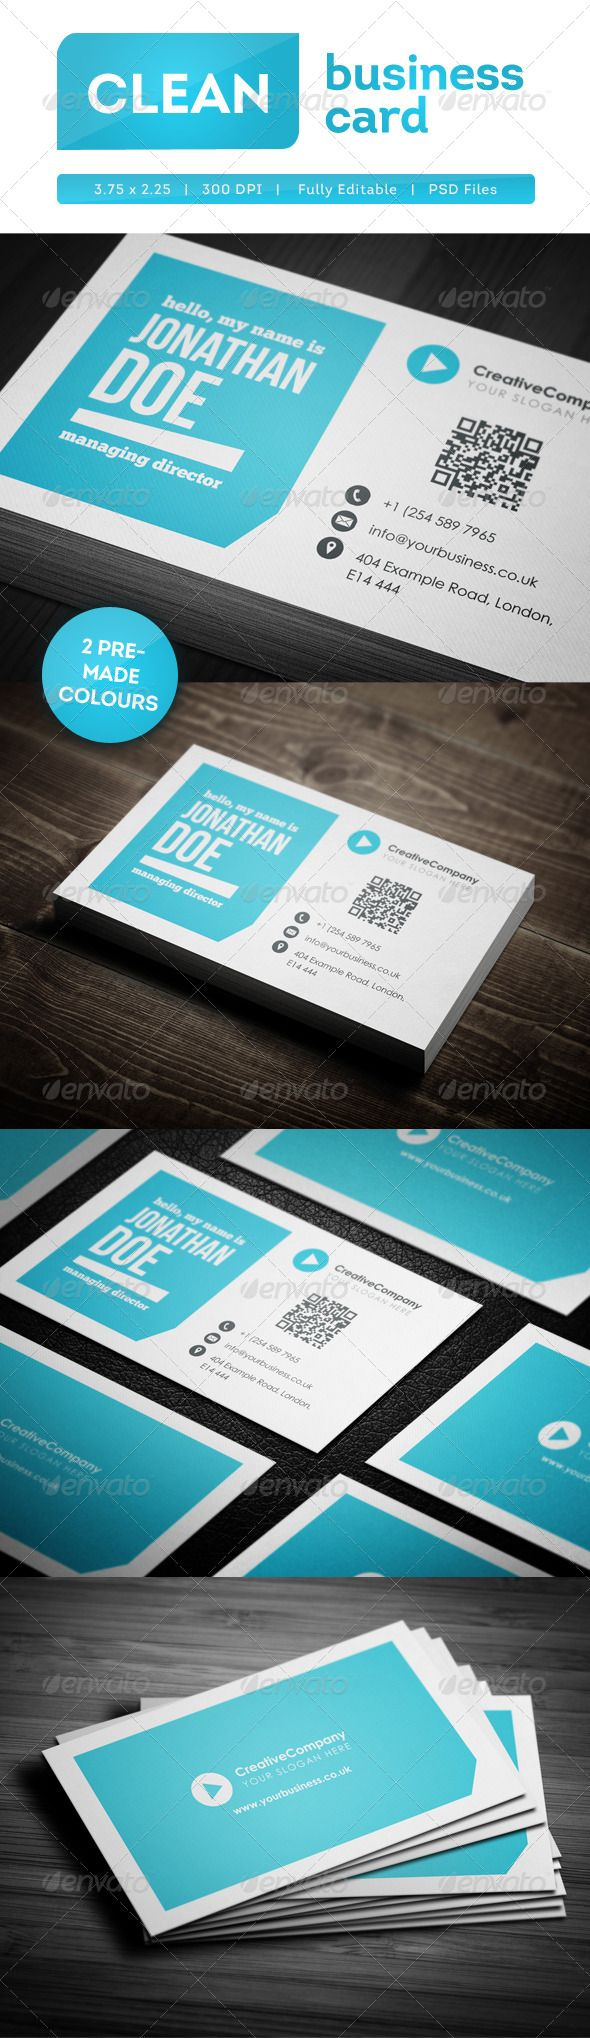 Clean business card business cards business and google maps icon clean business card psd templatesbusiness reheart Gallery